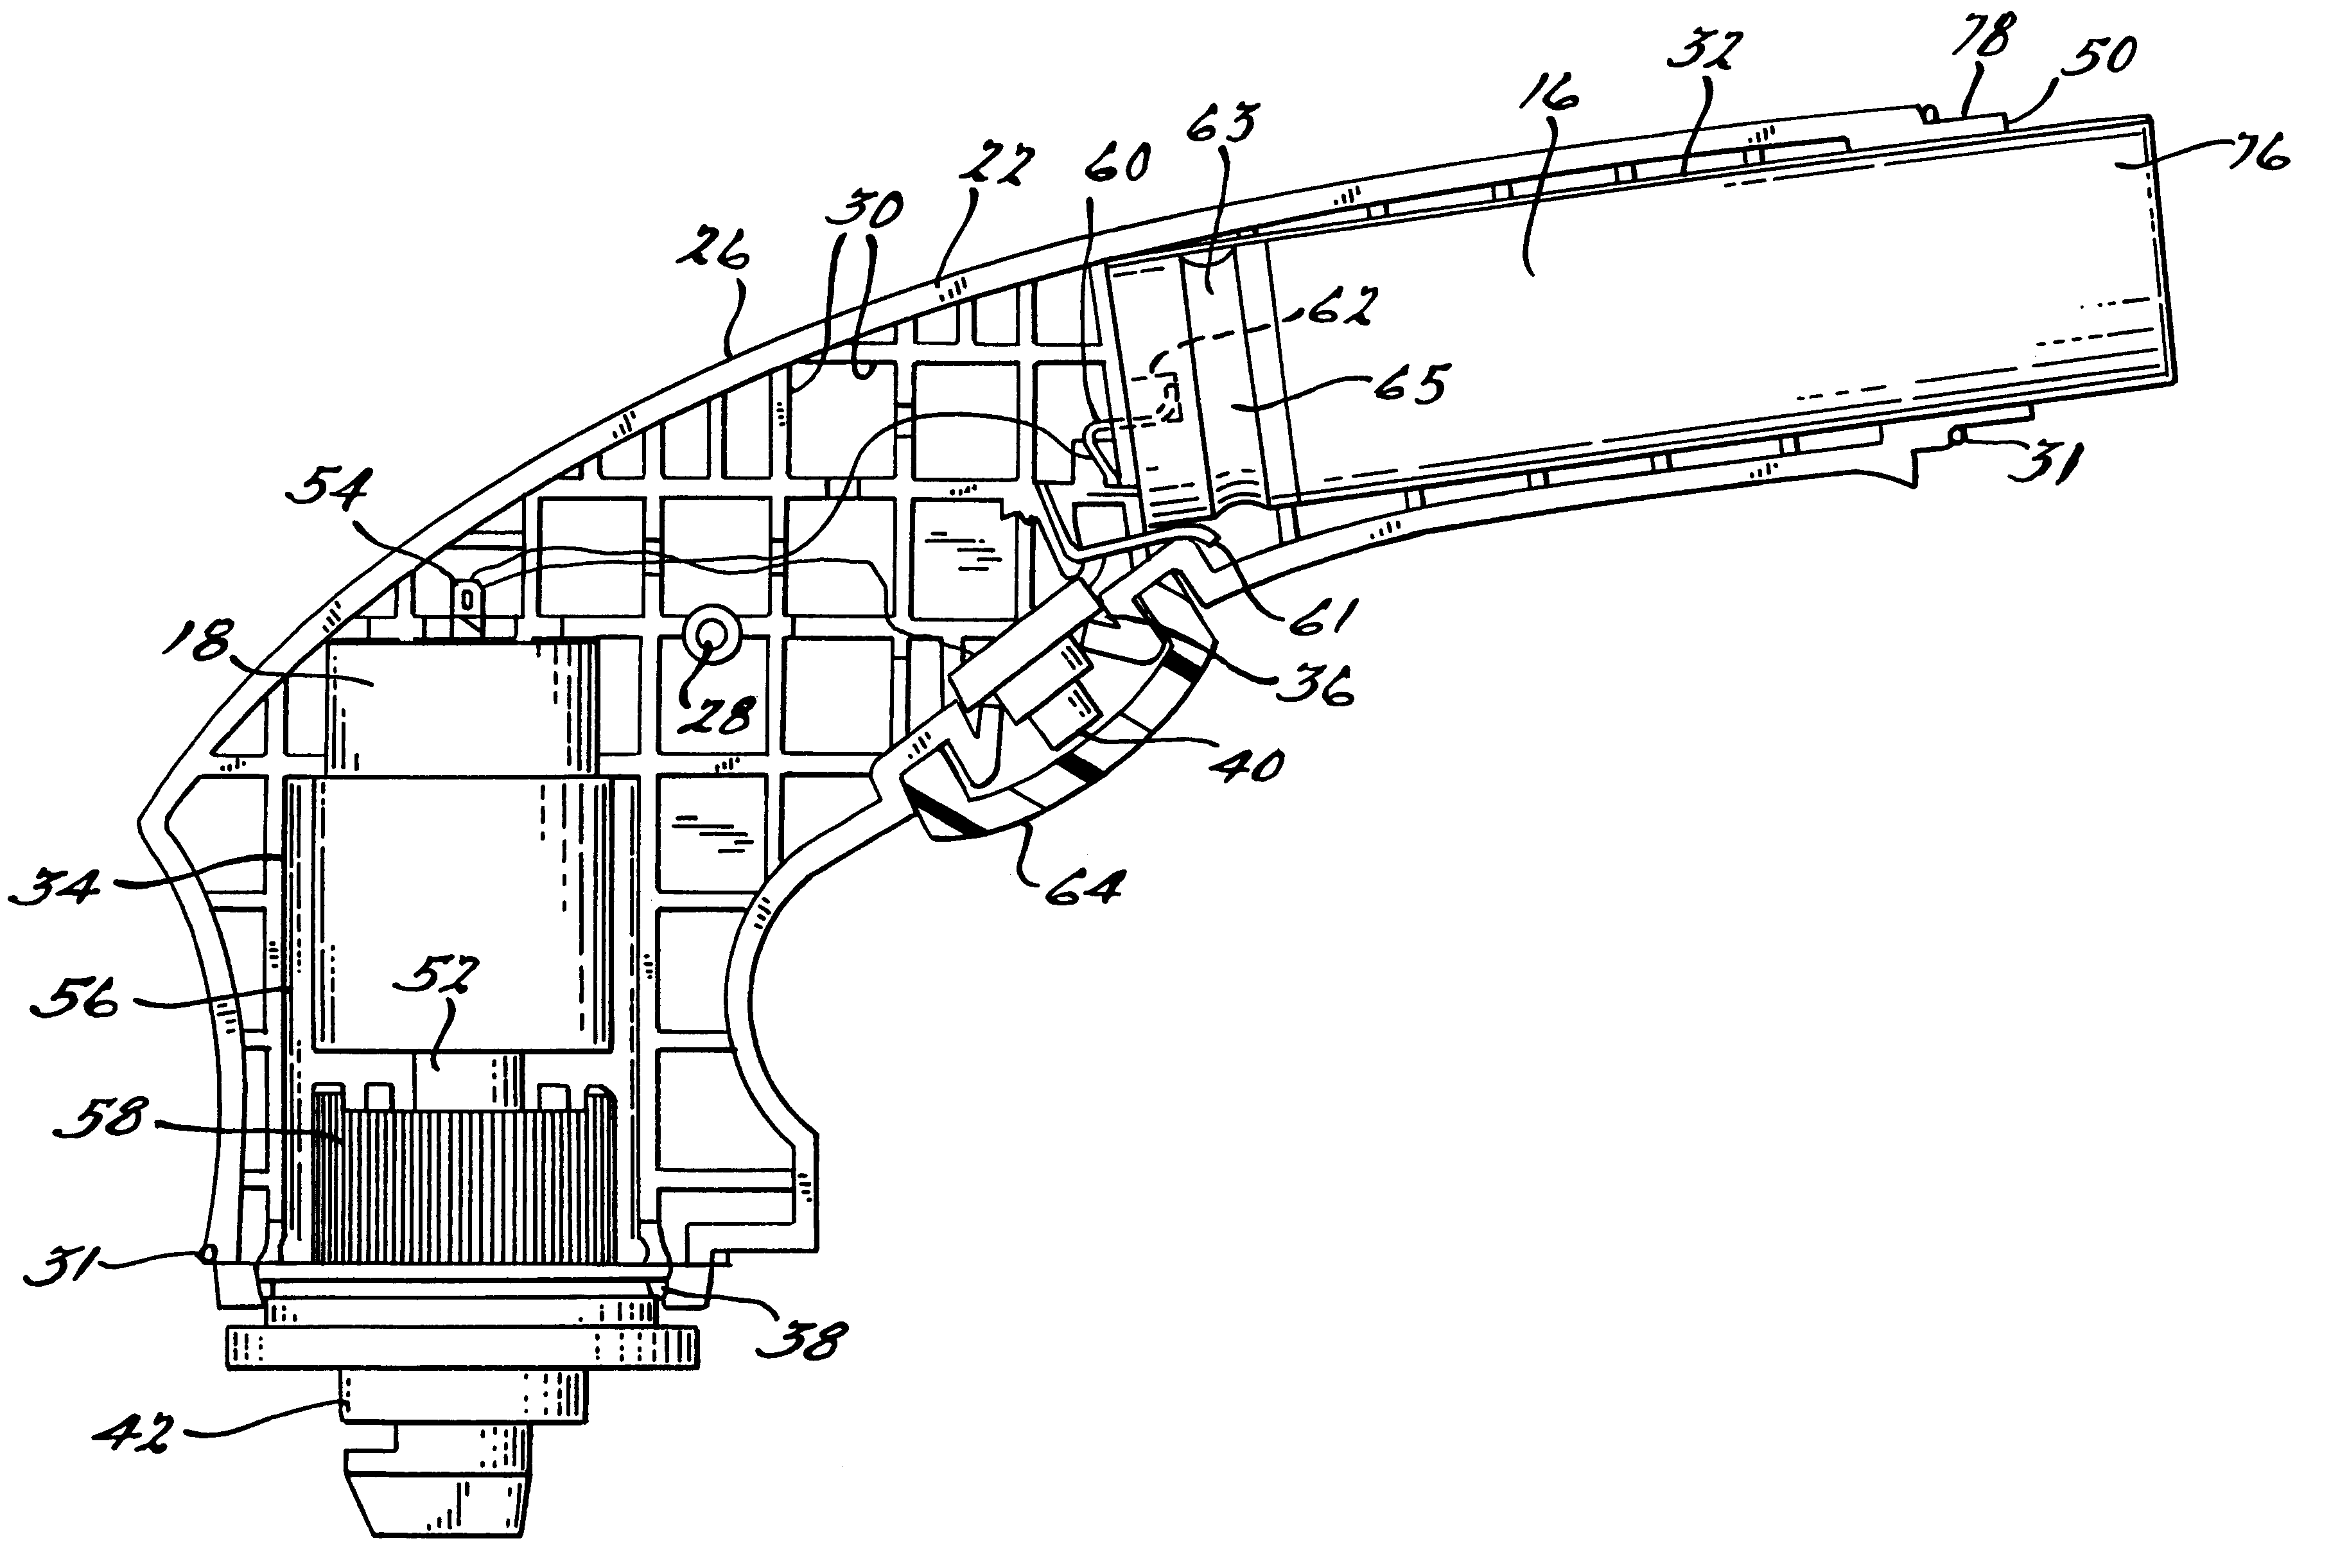 bffce55a2c4 Patent US6248007 - Hand held motorized tool with over-molded cover - Google  Patents